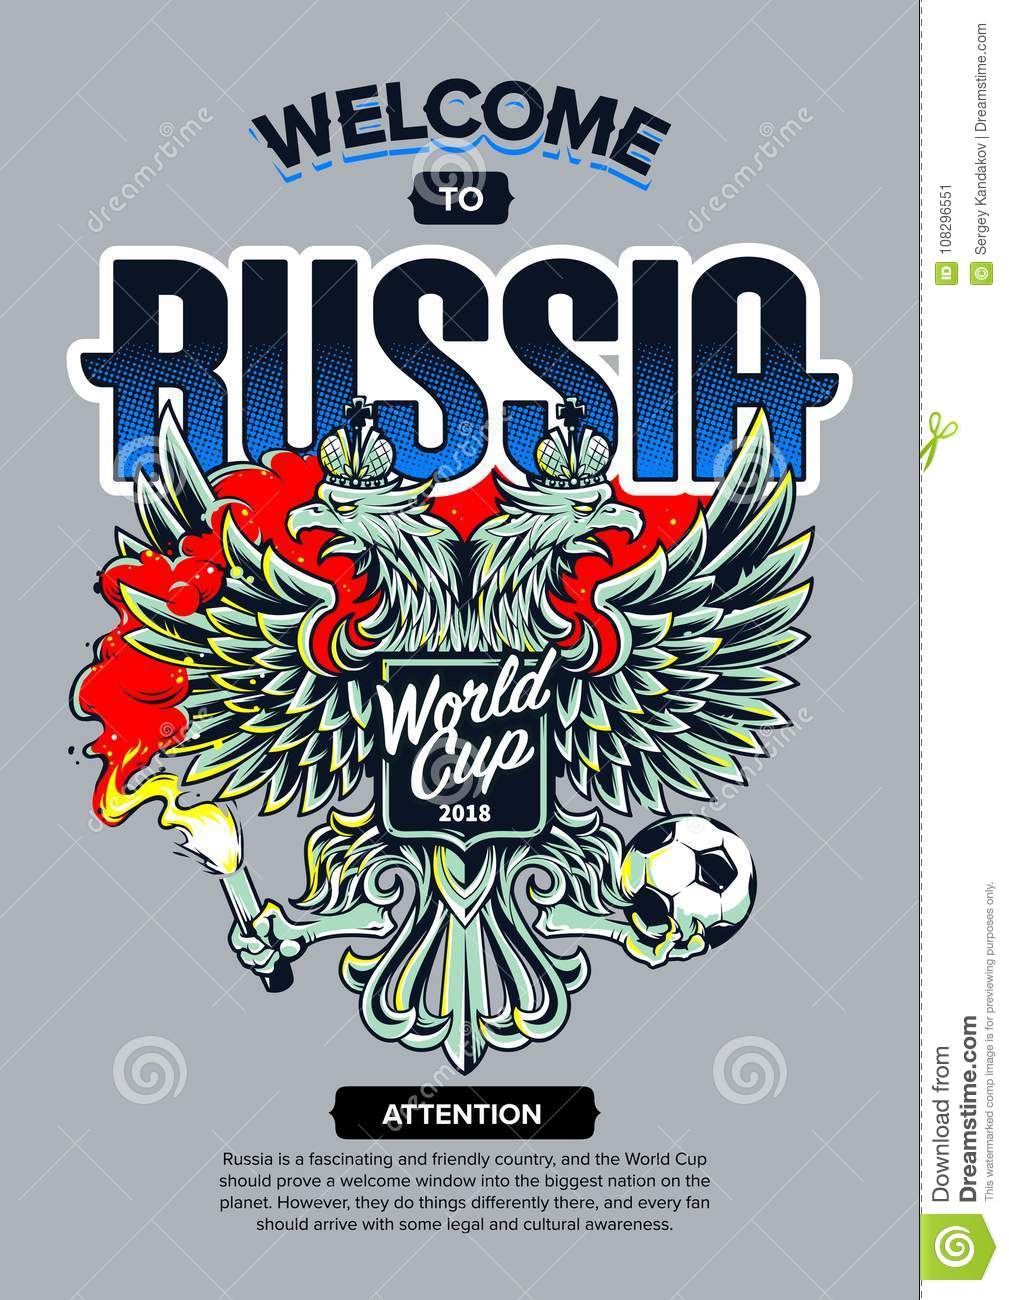 Welcome To Russia Art Stock Vector Illustration Of Coat 108296551